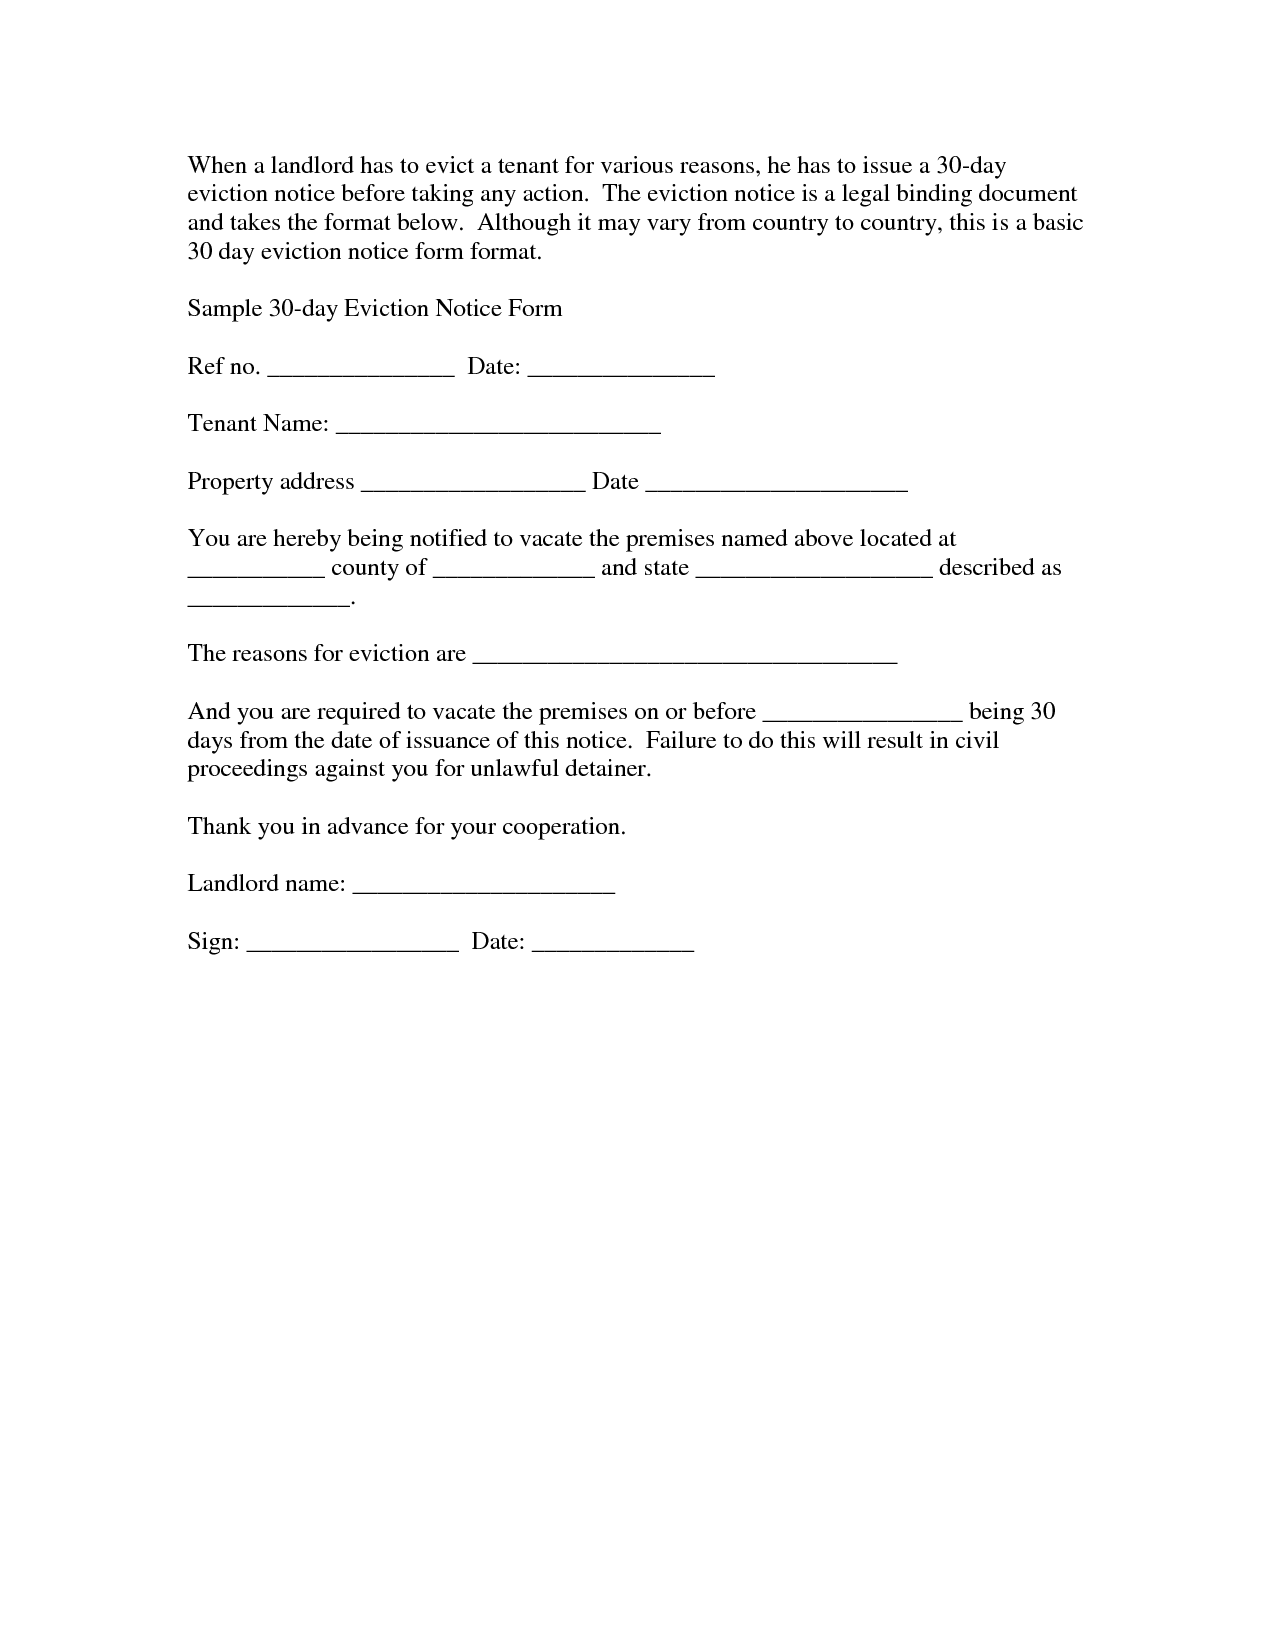 Notice Of Eviction Letter Template seeabruzzo 30 day eviction – Tenant Eviction Notice Form